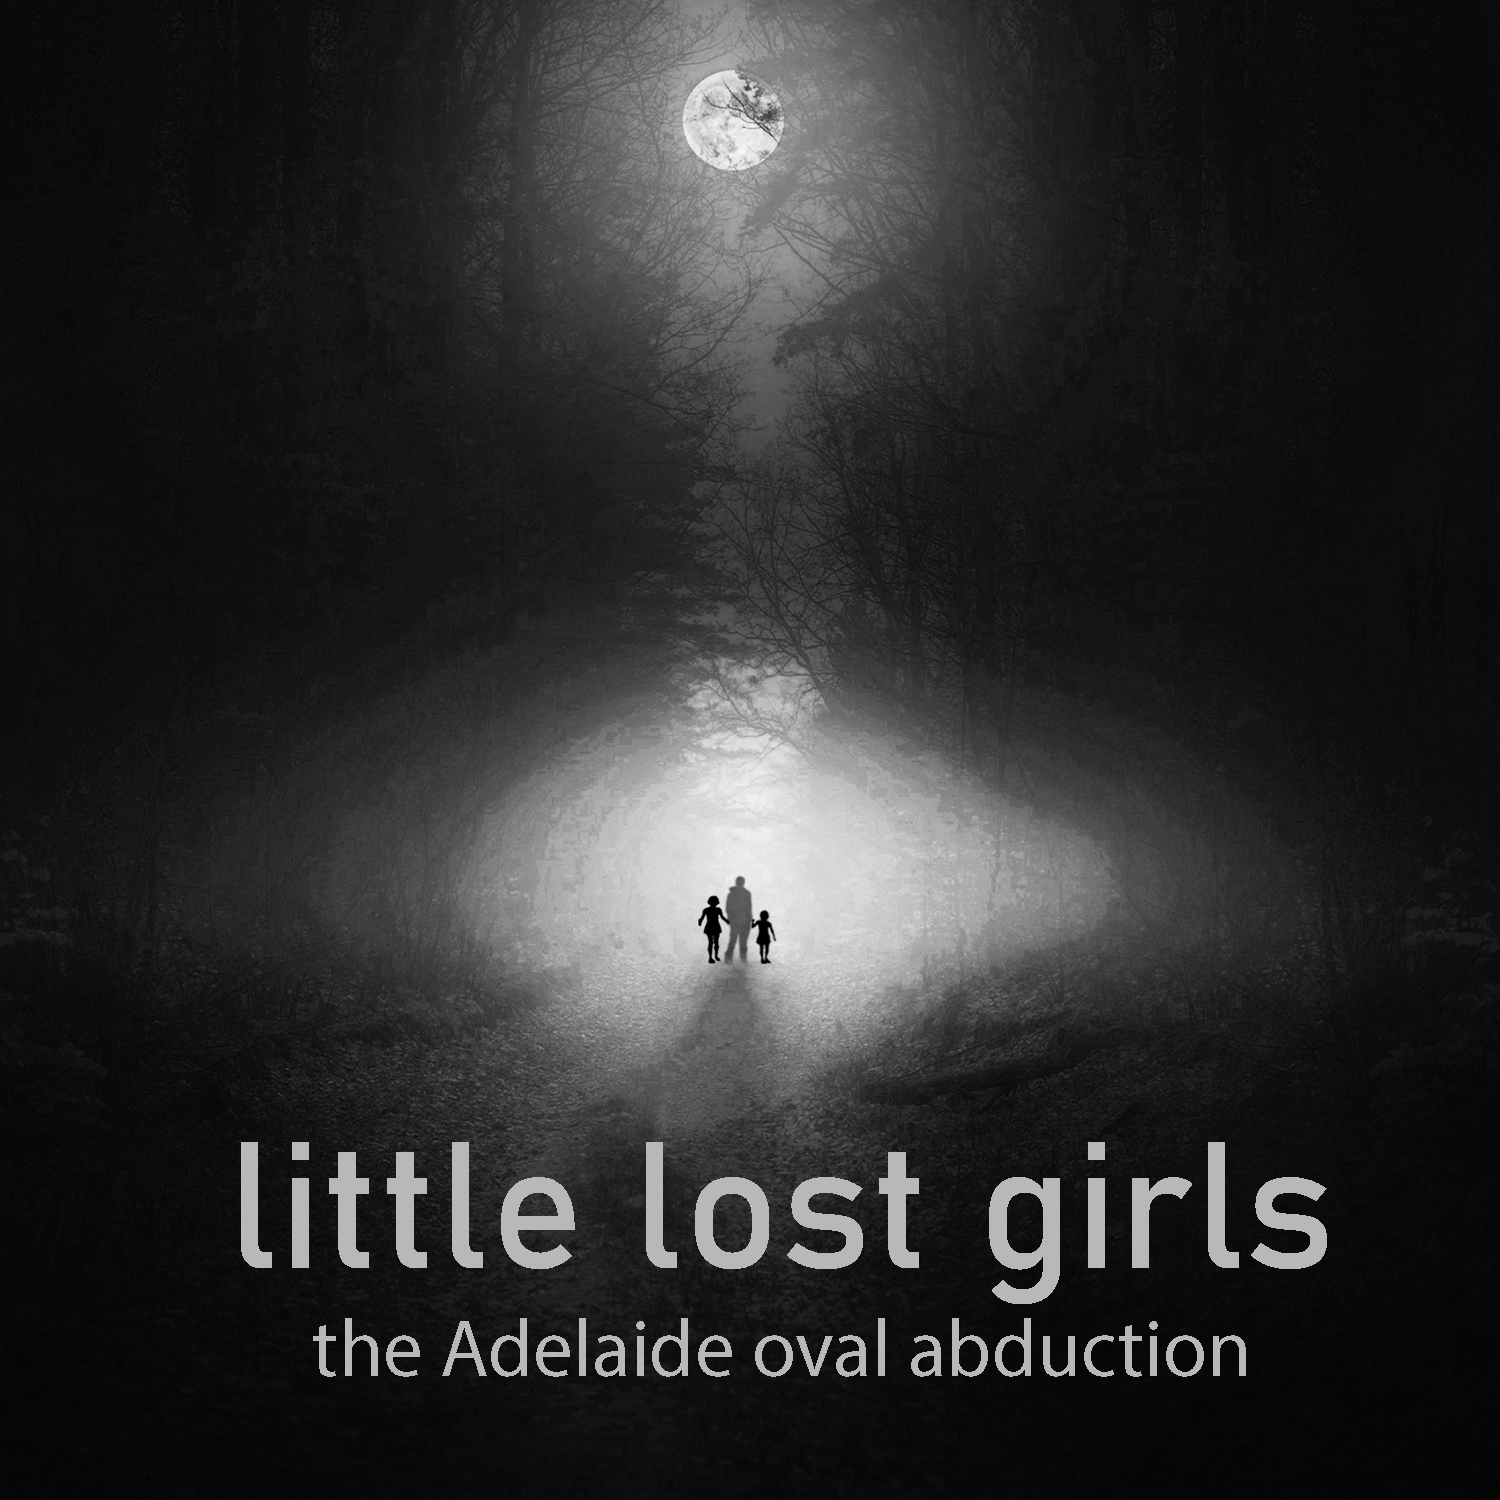 It's the story of two children who disappeared from the Adelaide oval in 1973.   Joanne Ratcliffe and Kirste Jane Gordon  were two Australian girls who went missing while attending an Australian rules football match at the Adelaide Oval on 25 August 1973.  This is their story.